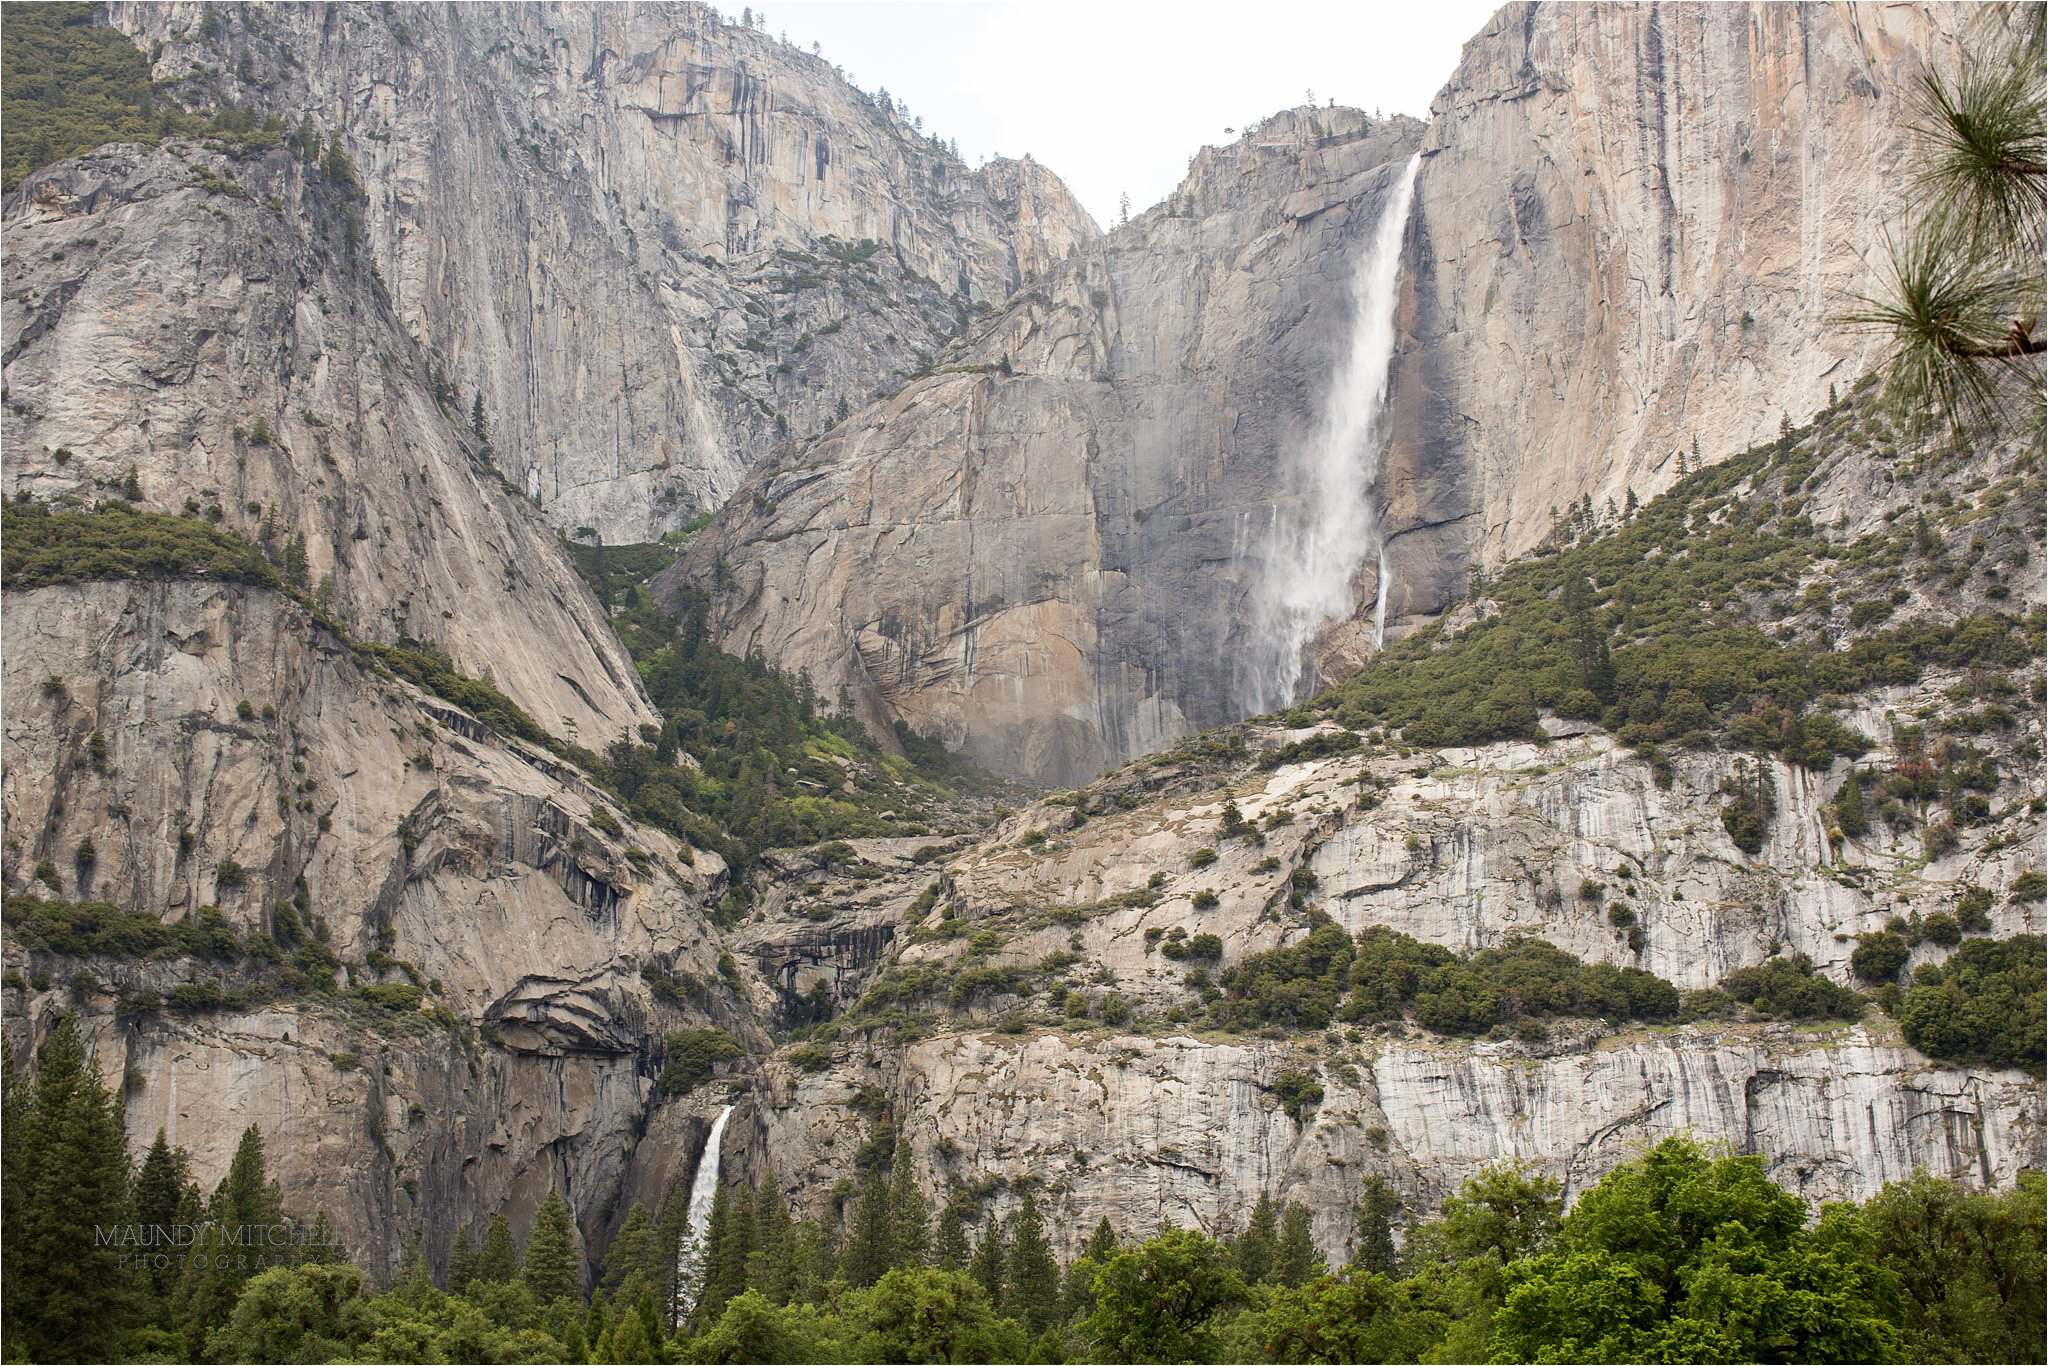 Waterfalls in Yosemite National Park